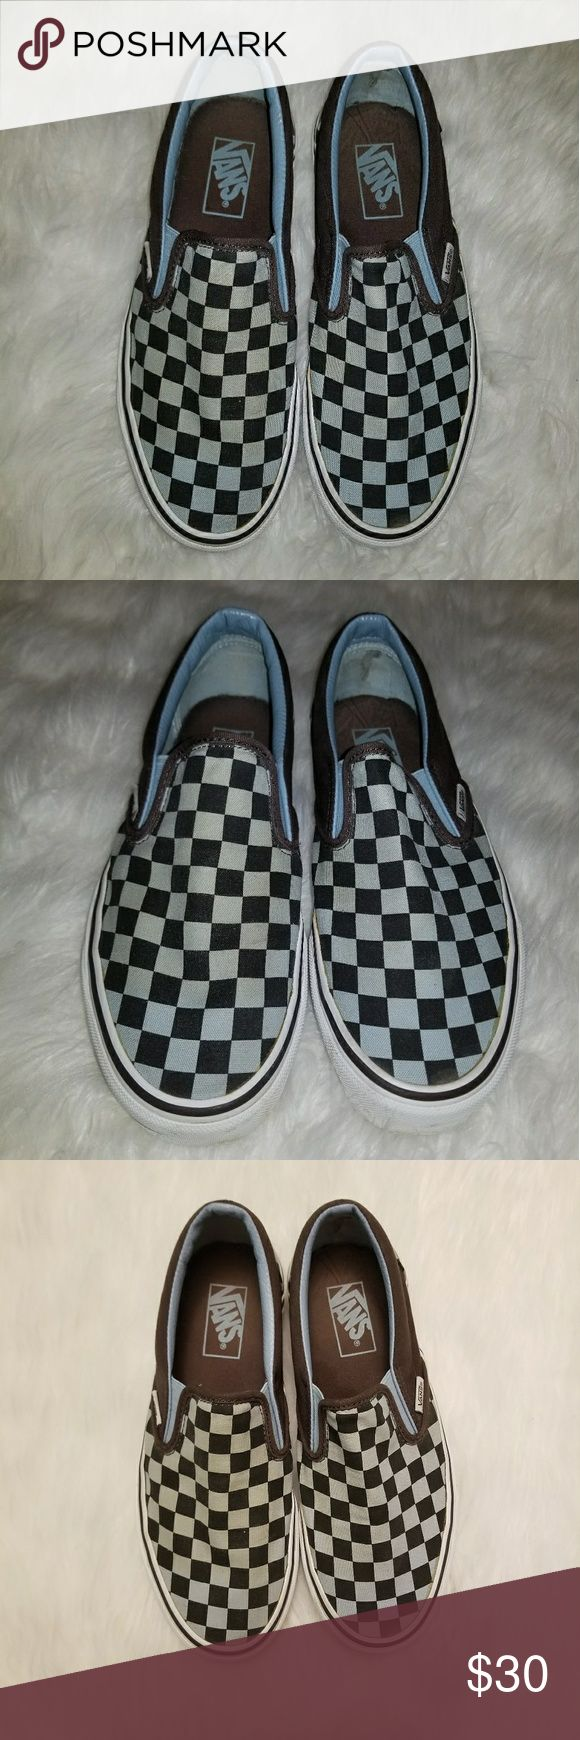 "Vans Slip-On Black & Blue Checkerboard Worn once. 100% authentic. These are so old that they don't even fit anymore, and I do not believe this color combo is for sale anymore. These have been worn a max of three times and not for very long because they are too small. Unisex. Blue and black checker pattern with brown details. Like-new condition. No smell, just that default ""new Vans"" shoe smell. Vans Shoes Sneakers"